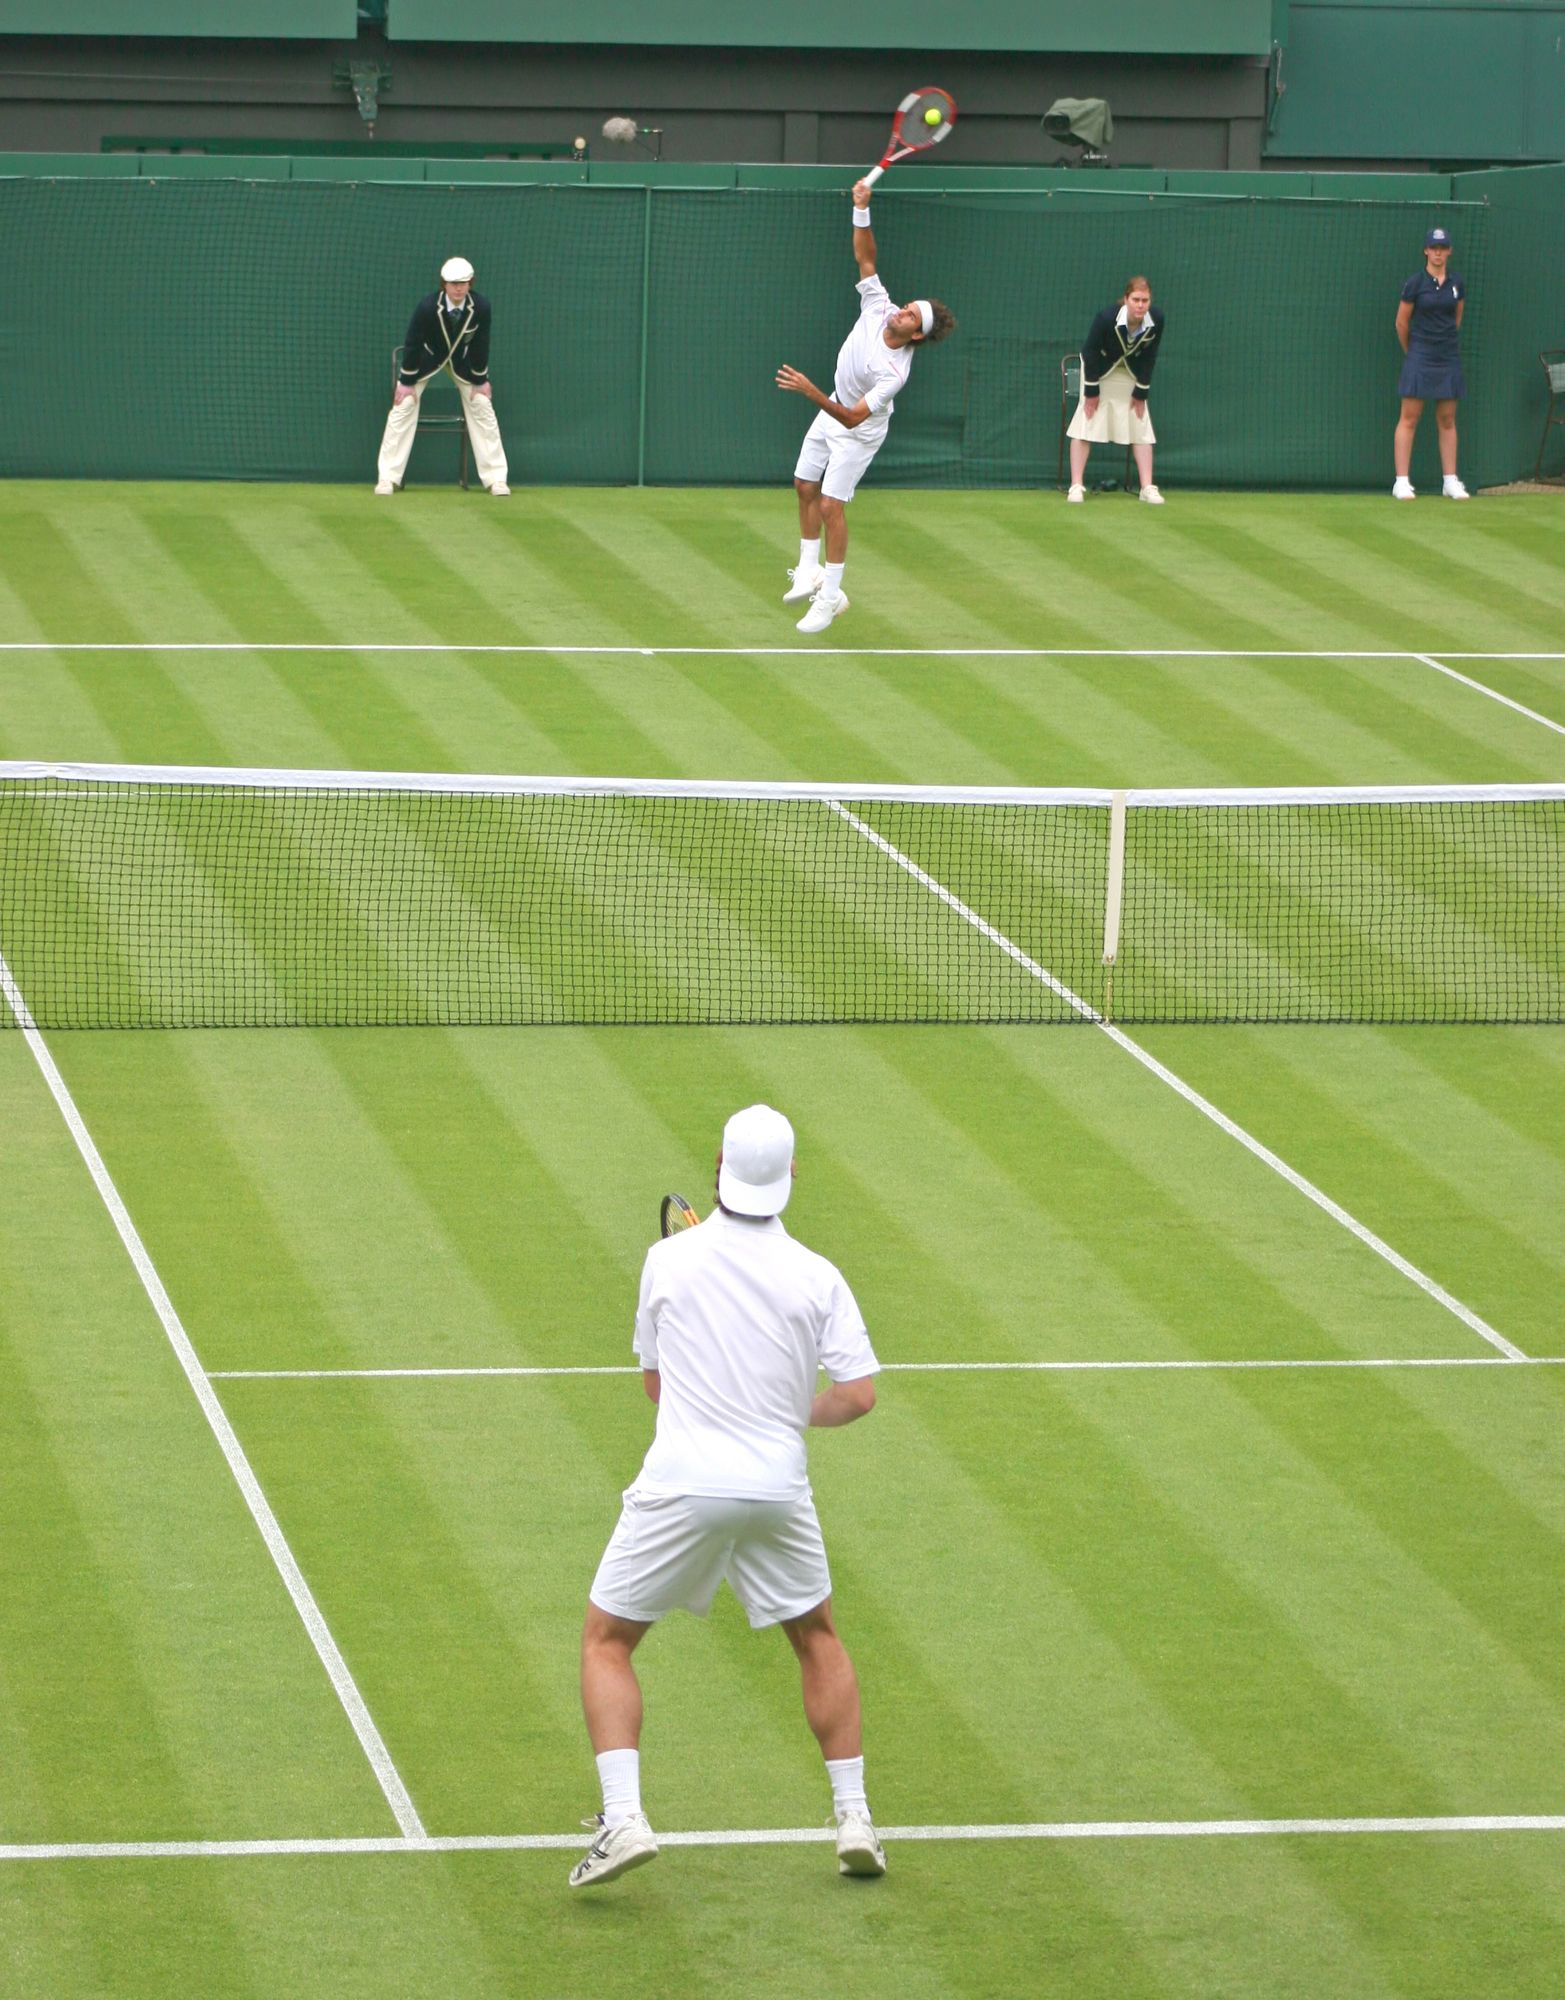 A Singles Tennis Match in the UK. Tennis match, Tennis